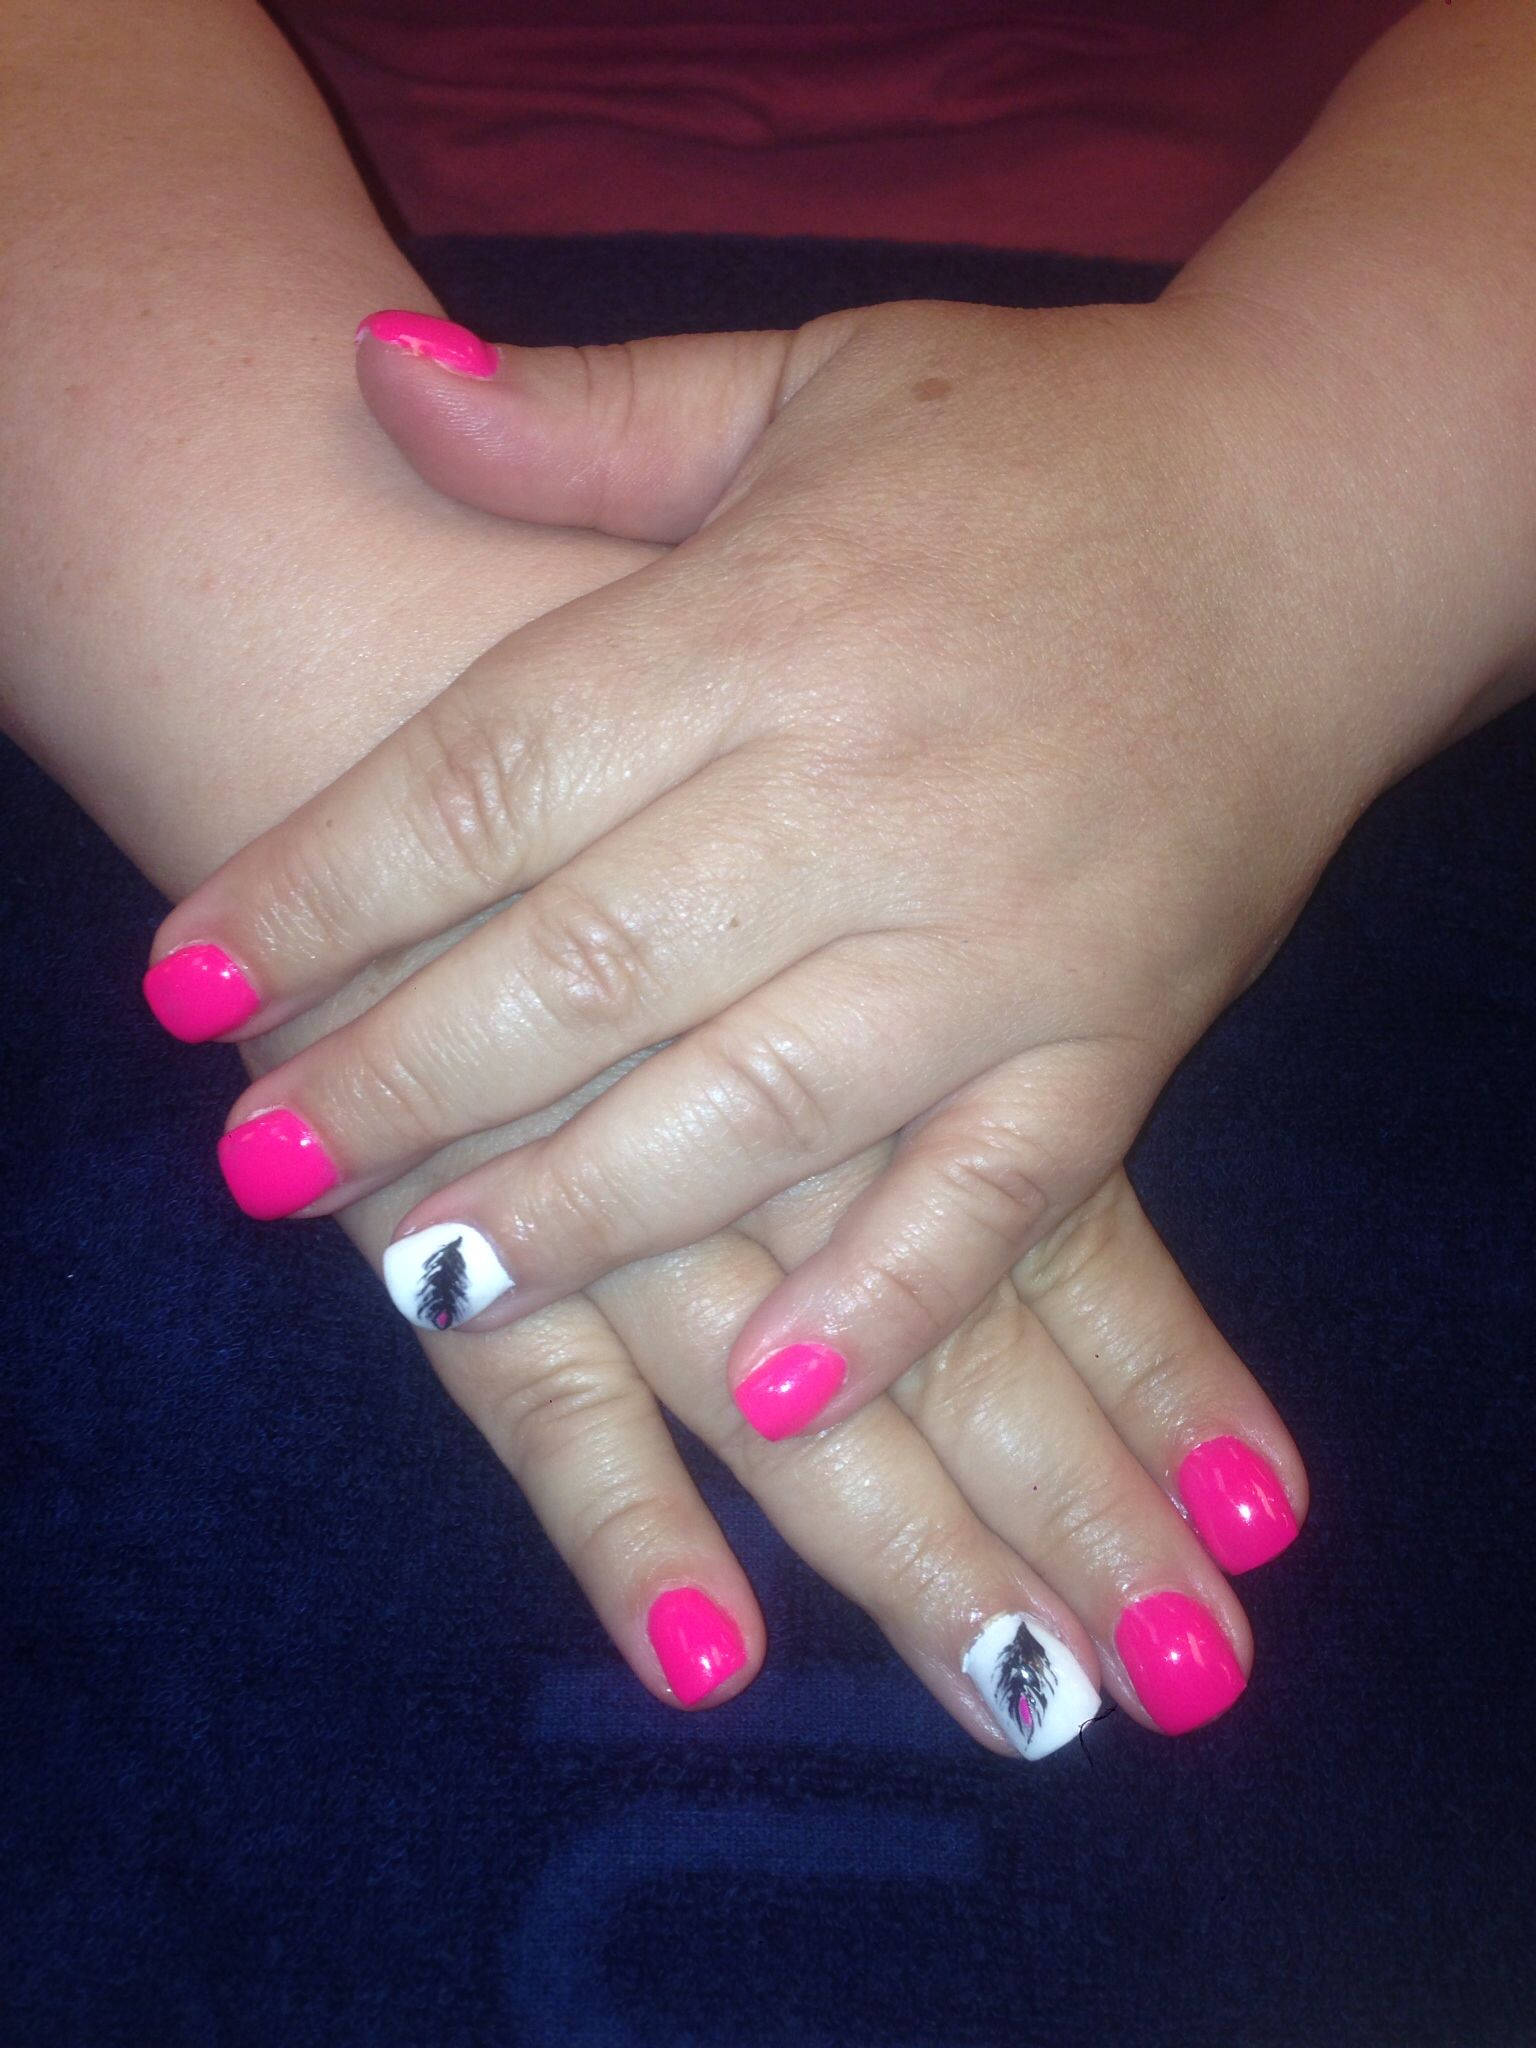 Sport length got pink and white hell nails with hand painted designs ...